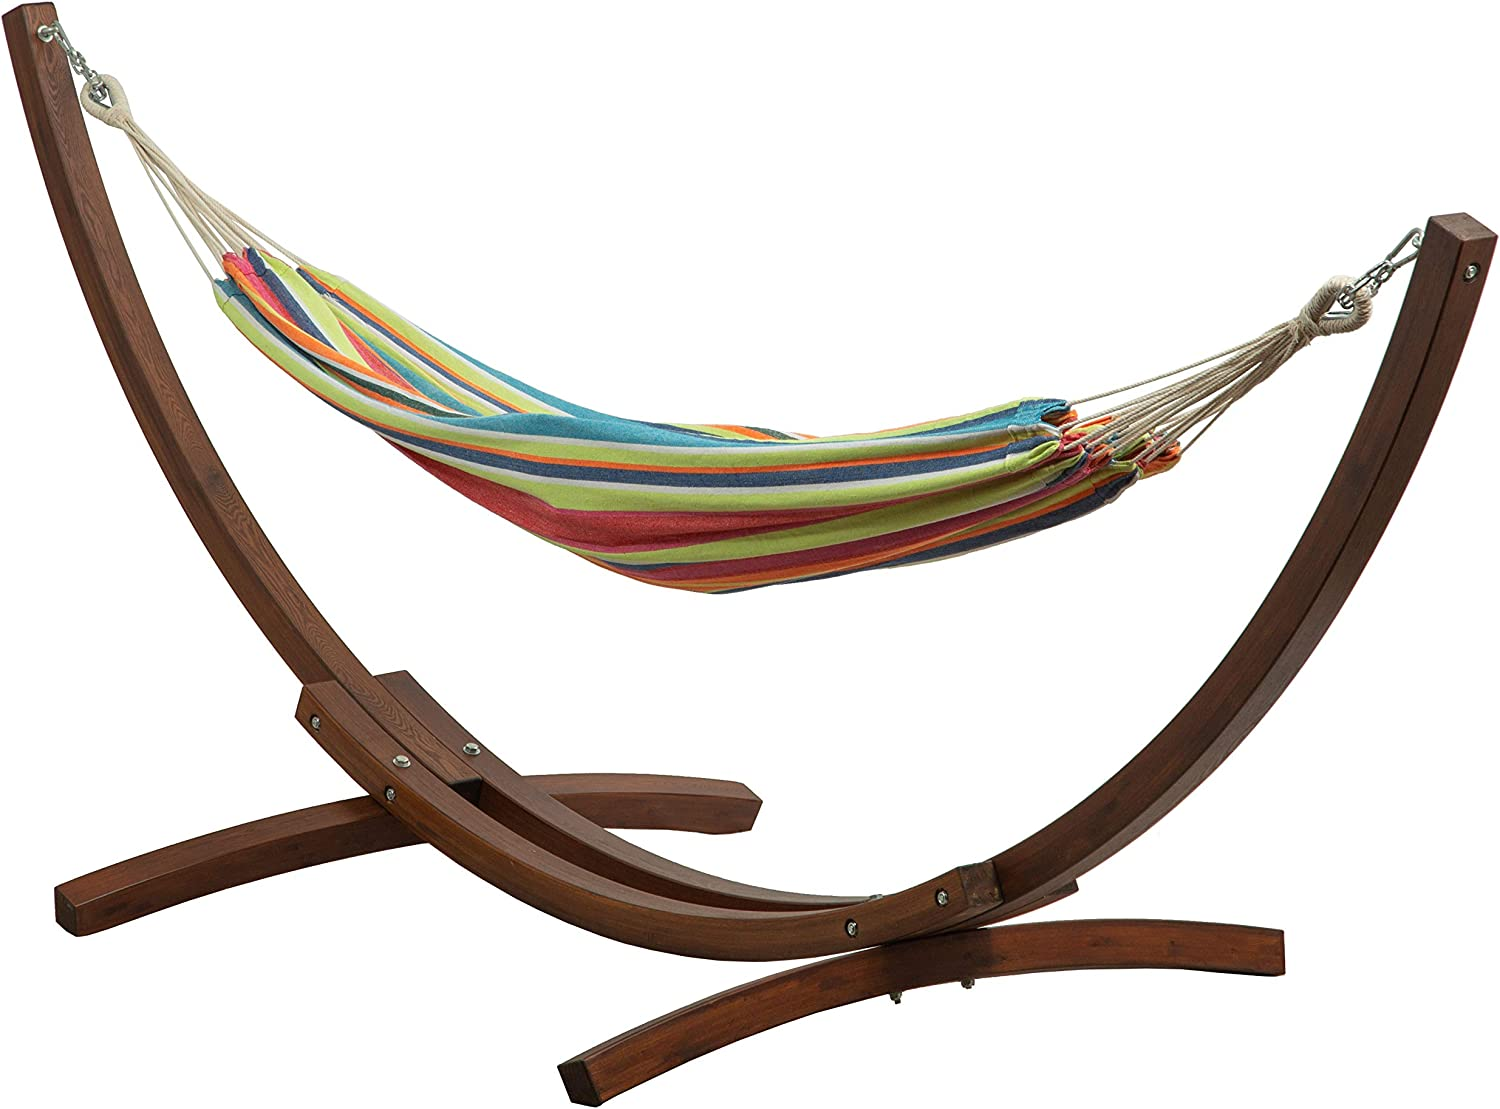 BELLEZE Double Cotton Hammock Bed with 10 ft Wooden Arc Outdoor Patio Hammock Stand, Tropical